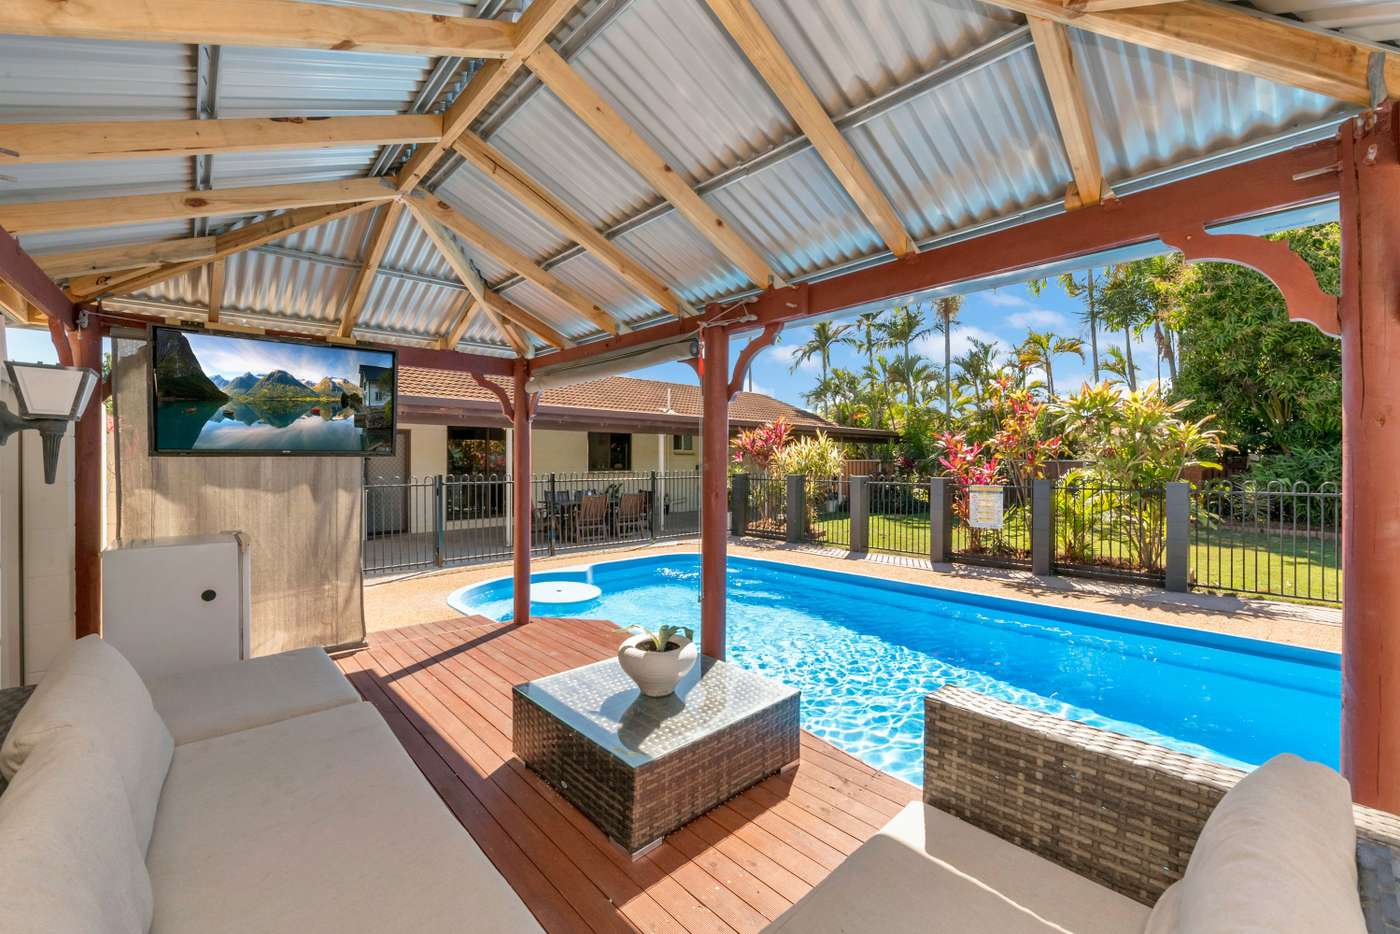 Main view of Homely house listing, 2 Lupin Court, Annandale QLD 4814